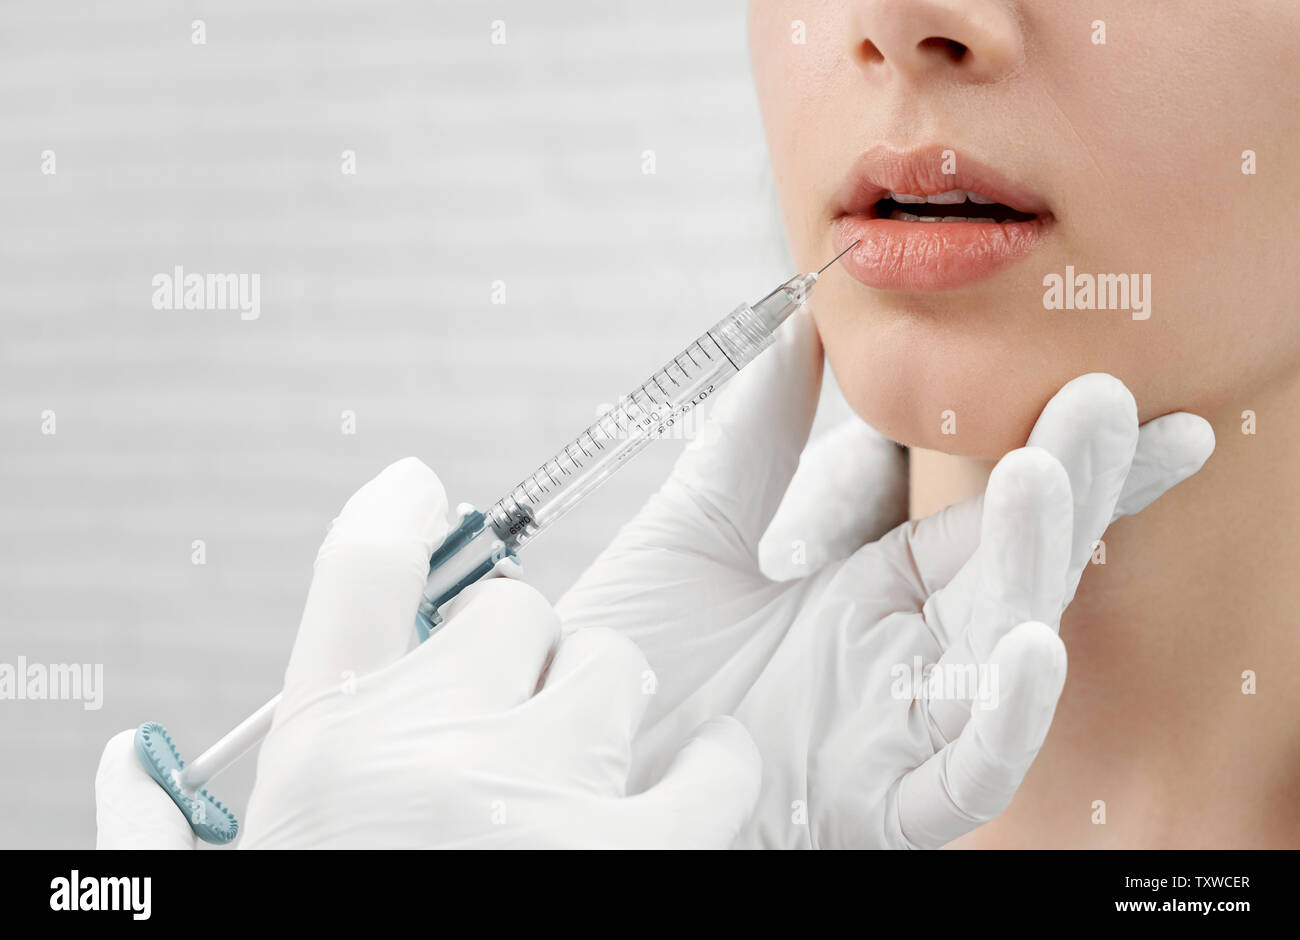 Close up of hands in white rubber medical gloves making injection, holding syringe, touching female chin. Well groomed face of young woman receiving botox of lips. Concept of beauty. Stock Photo